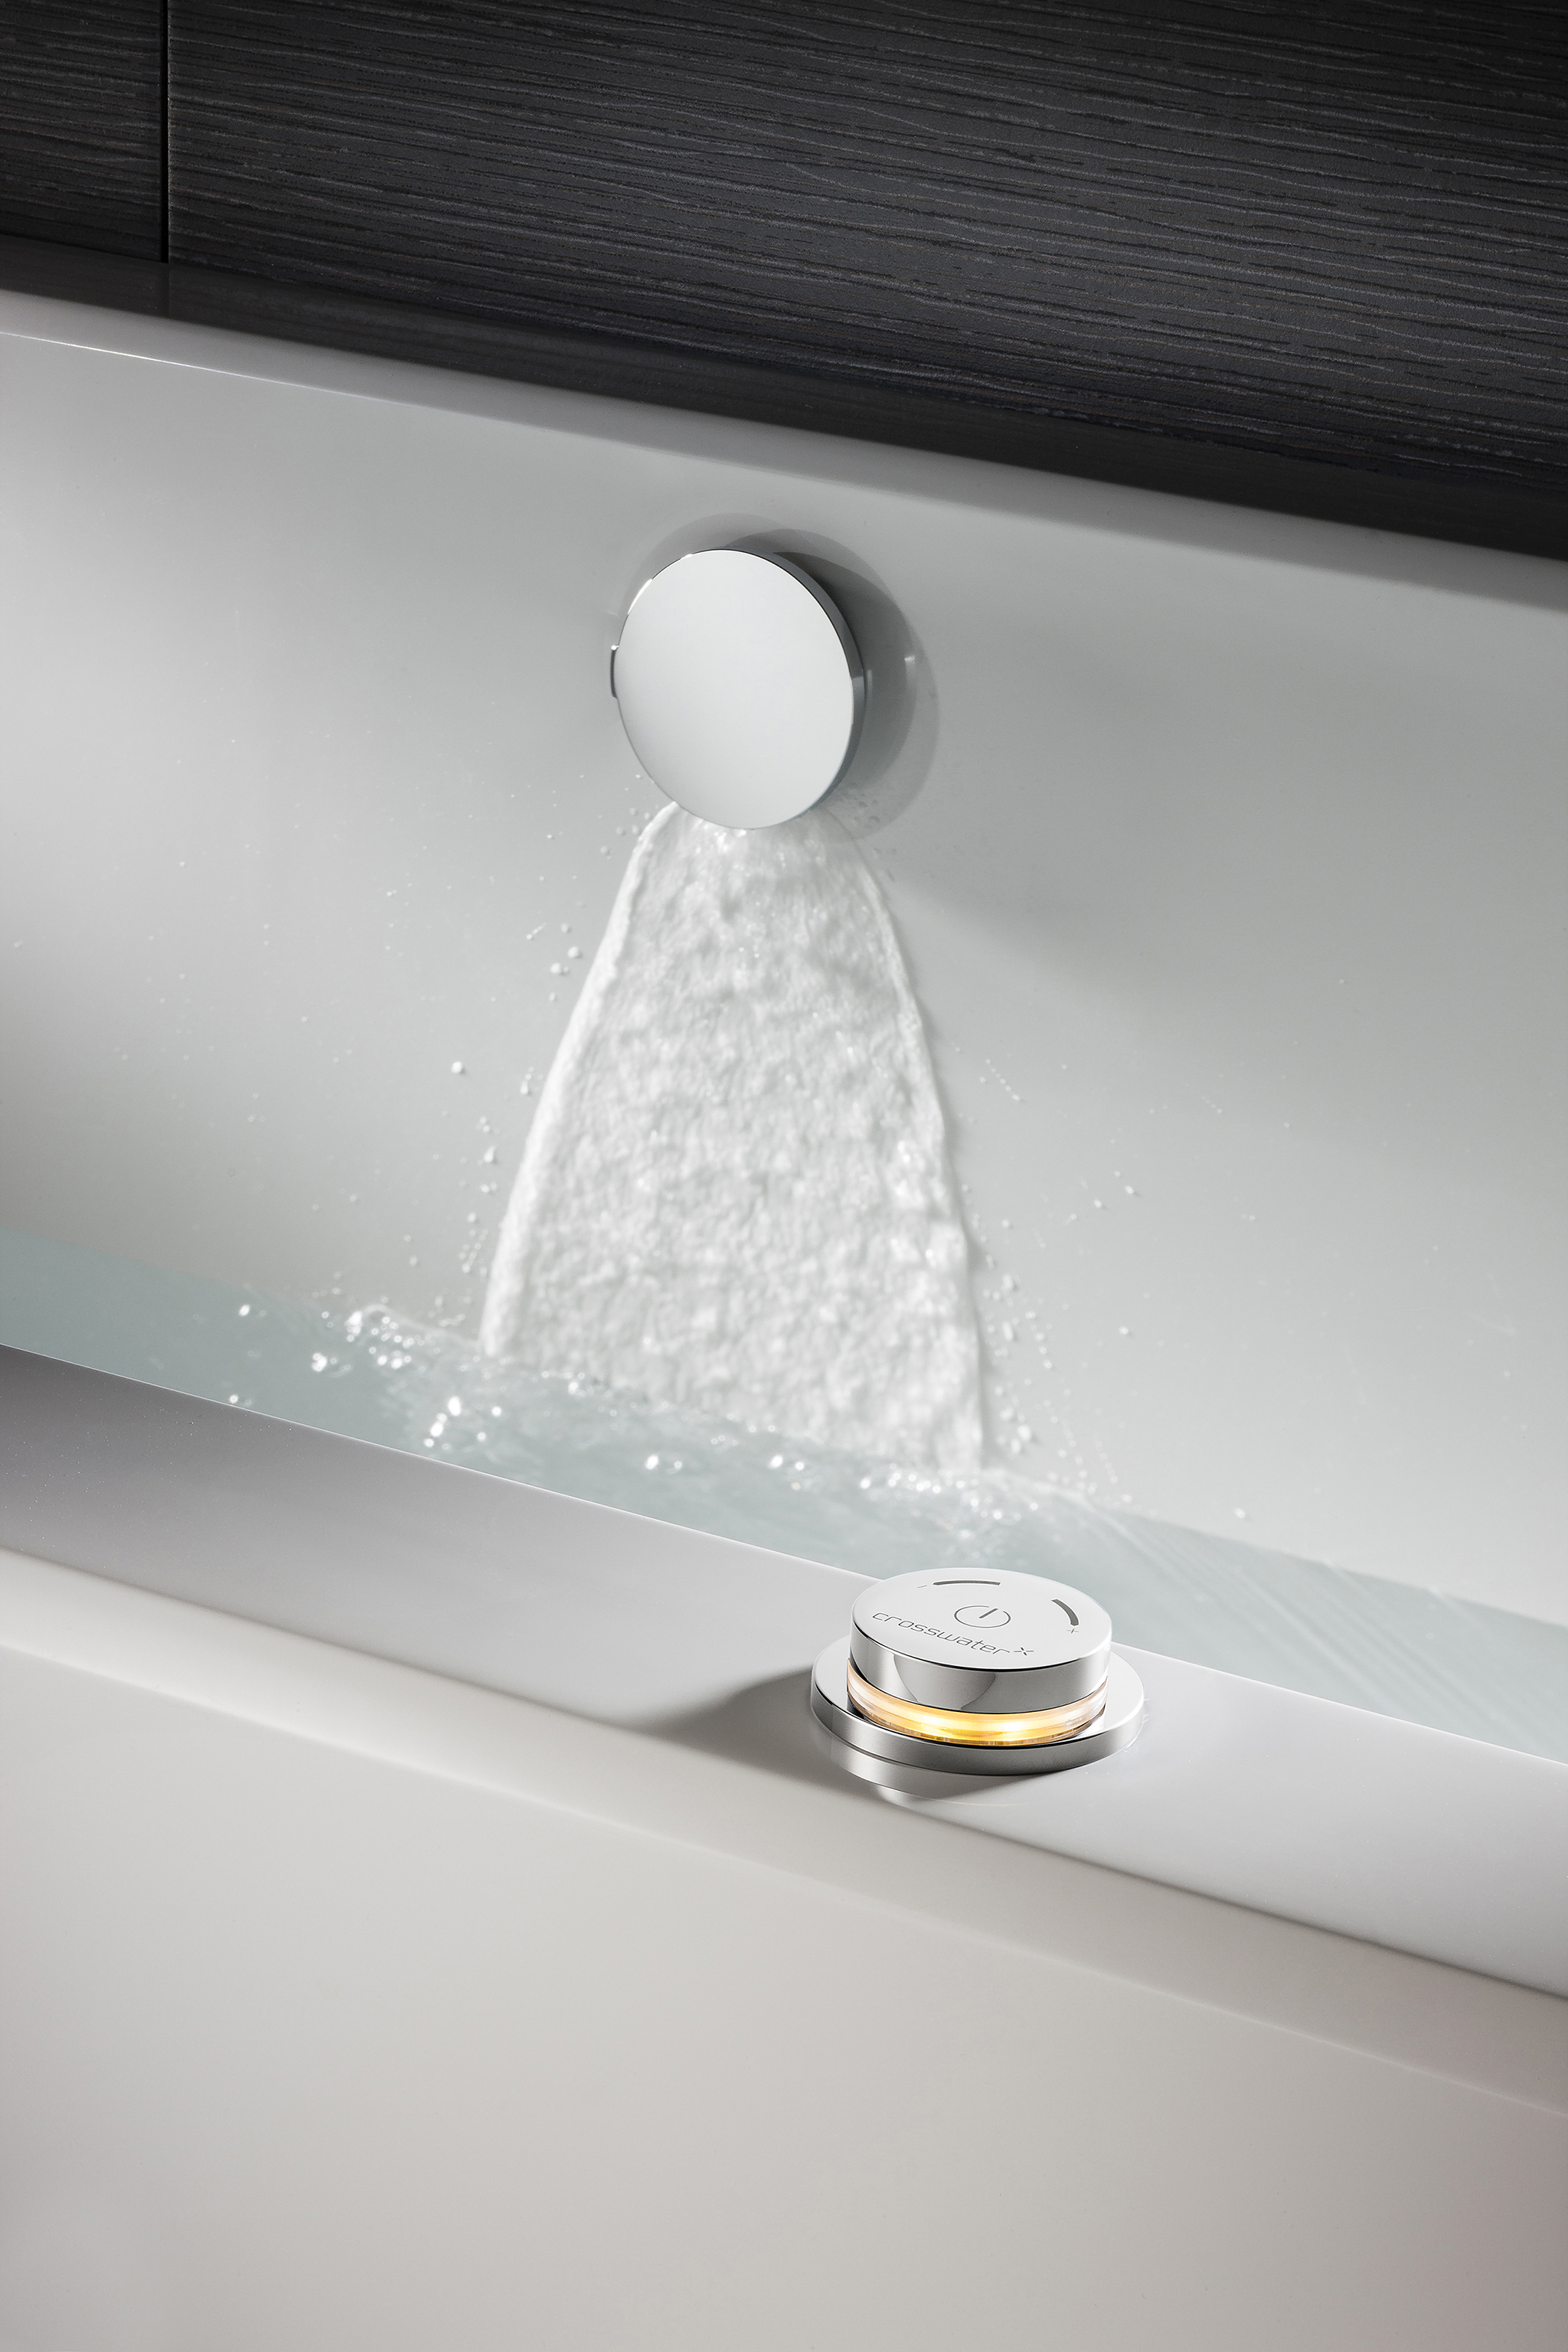 Digital Showers From Crosswater Give Total Water Control